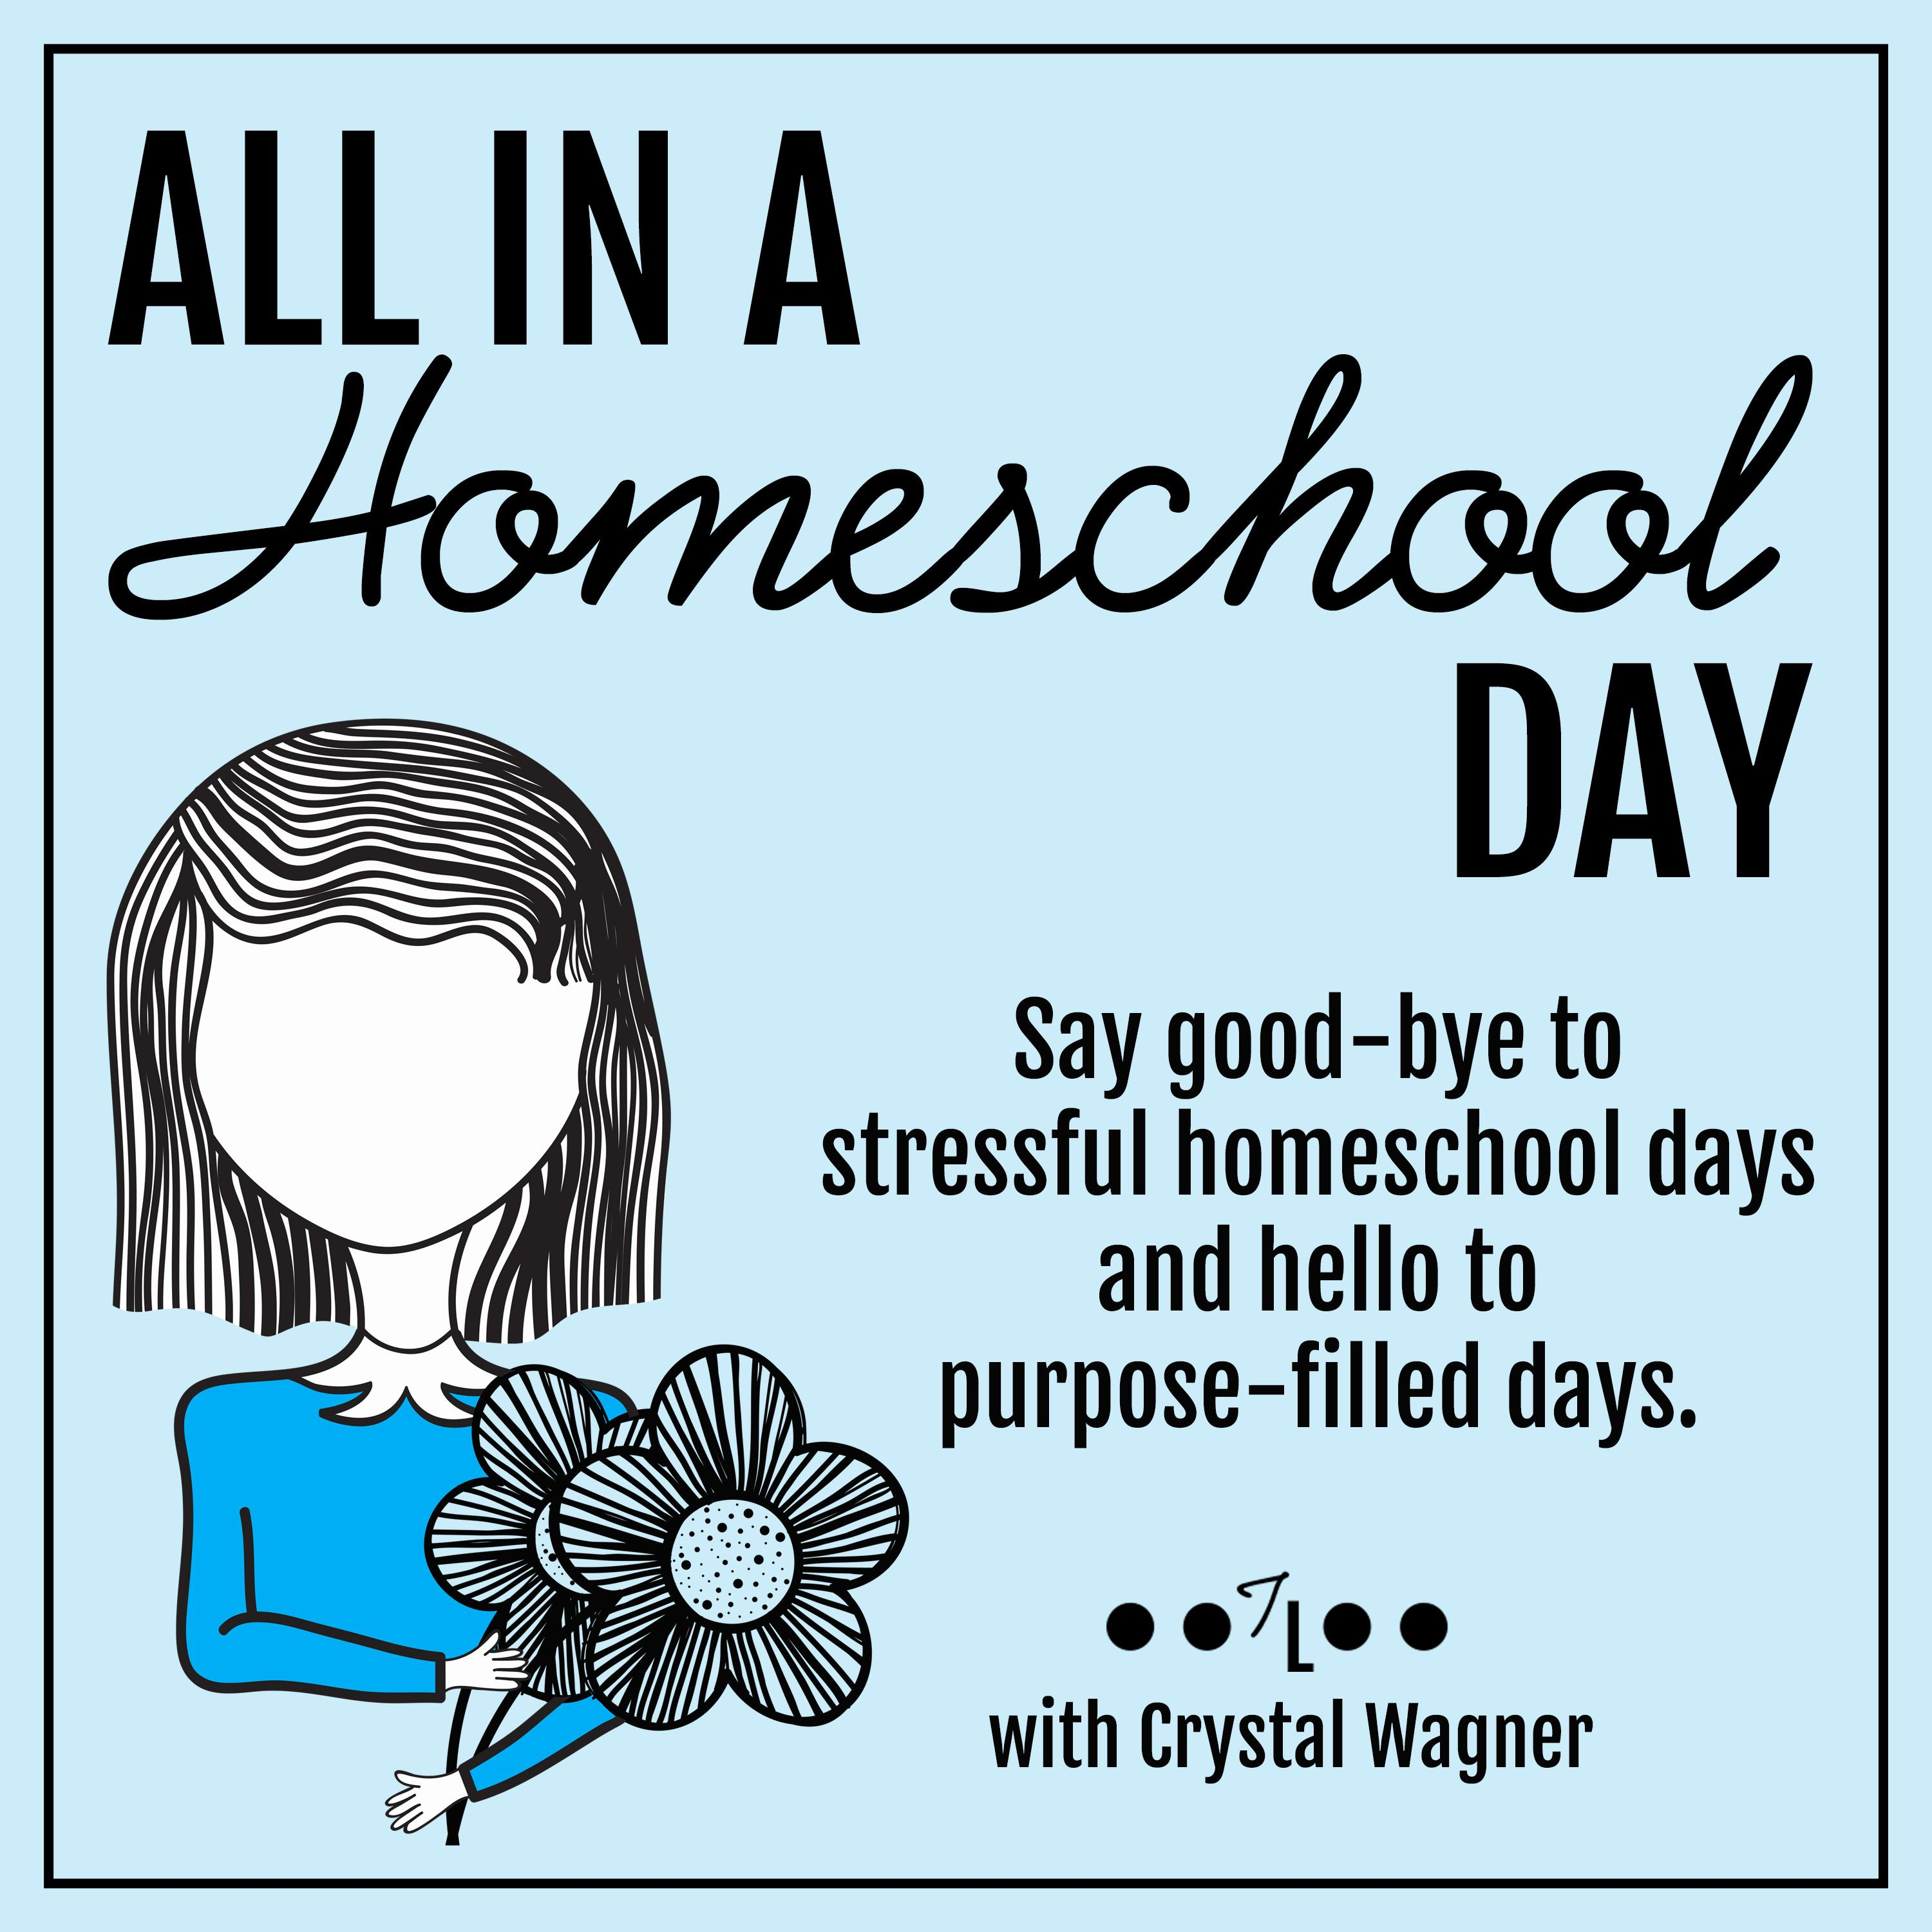 044: How To Add Art To Your Homeschool With Tricia Hodges